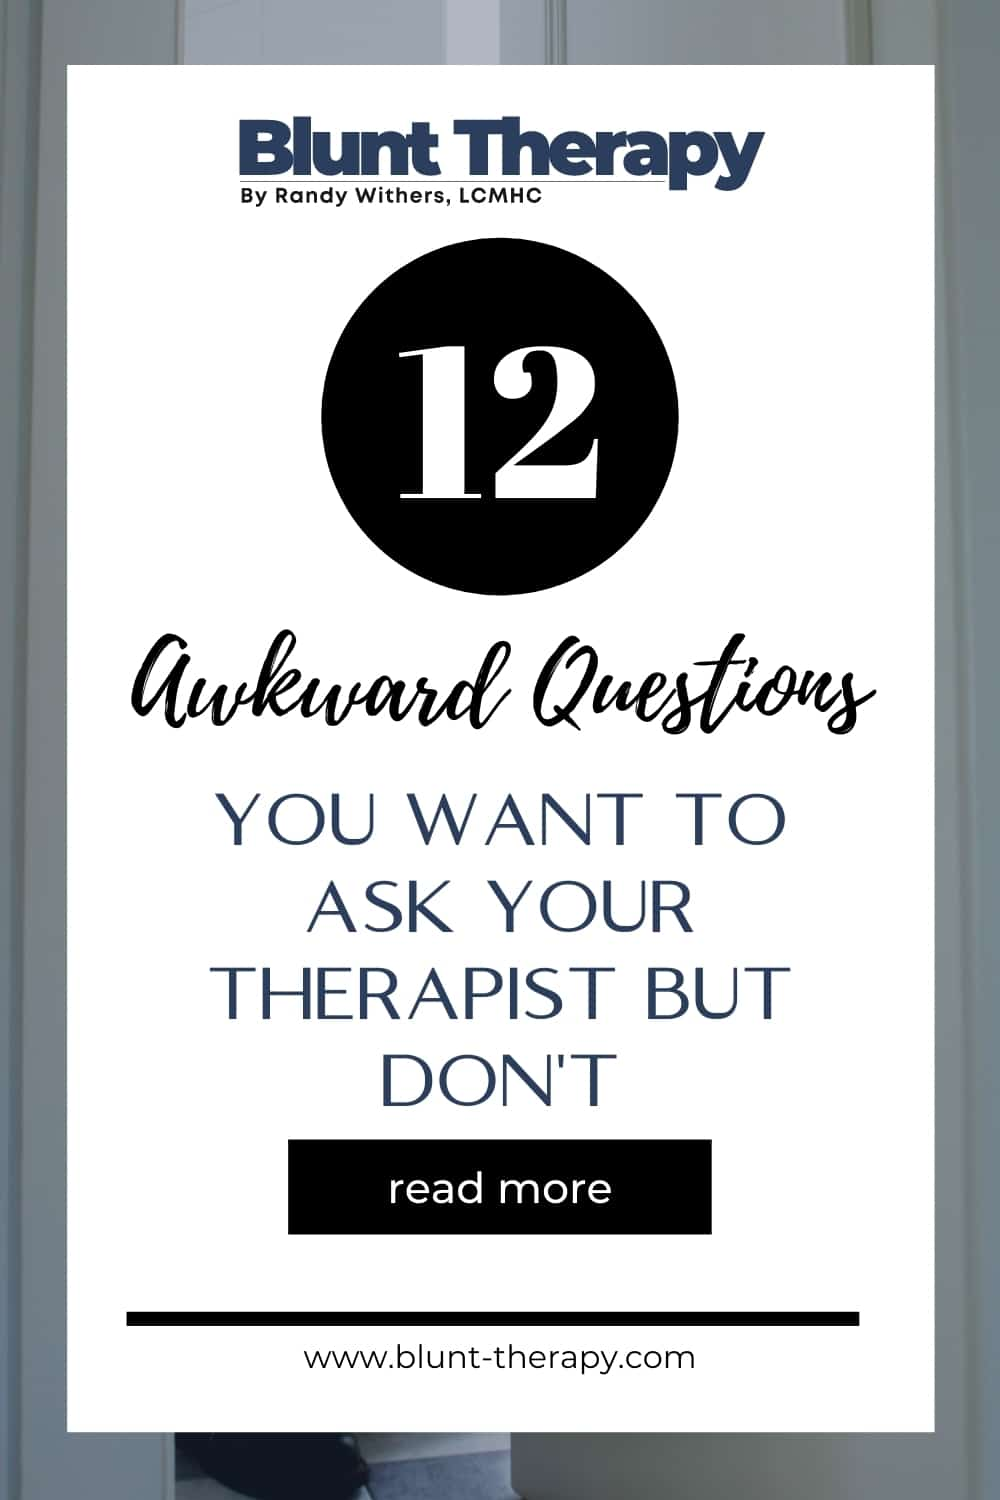 12 Awkward Questions You Want To Ask Your Therapist But Don't (According To Google)